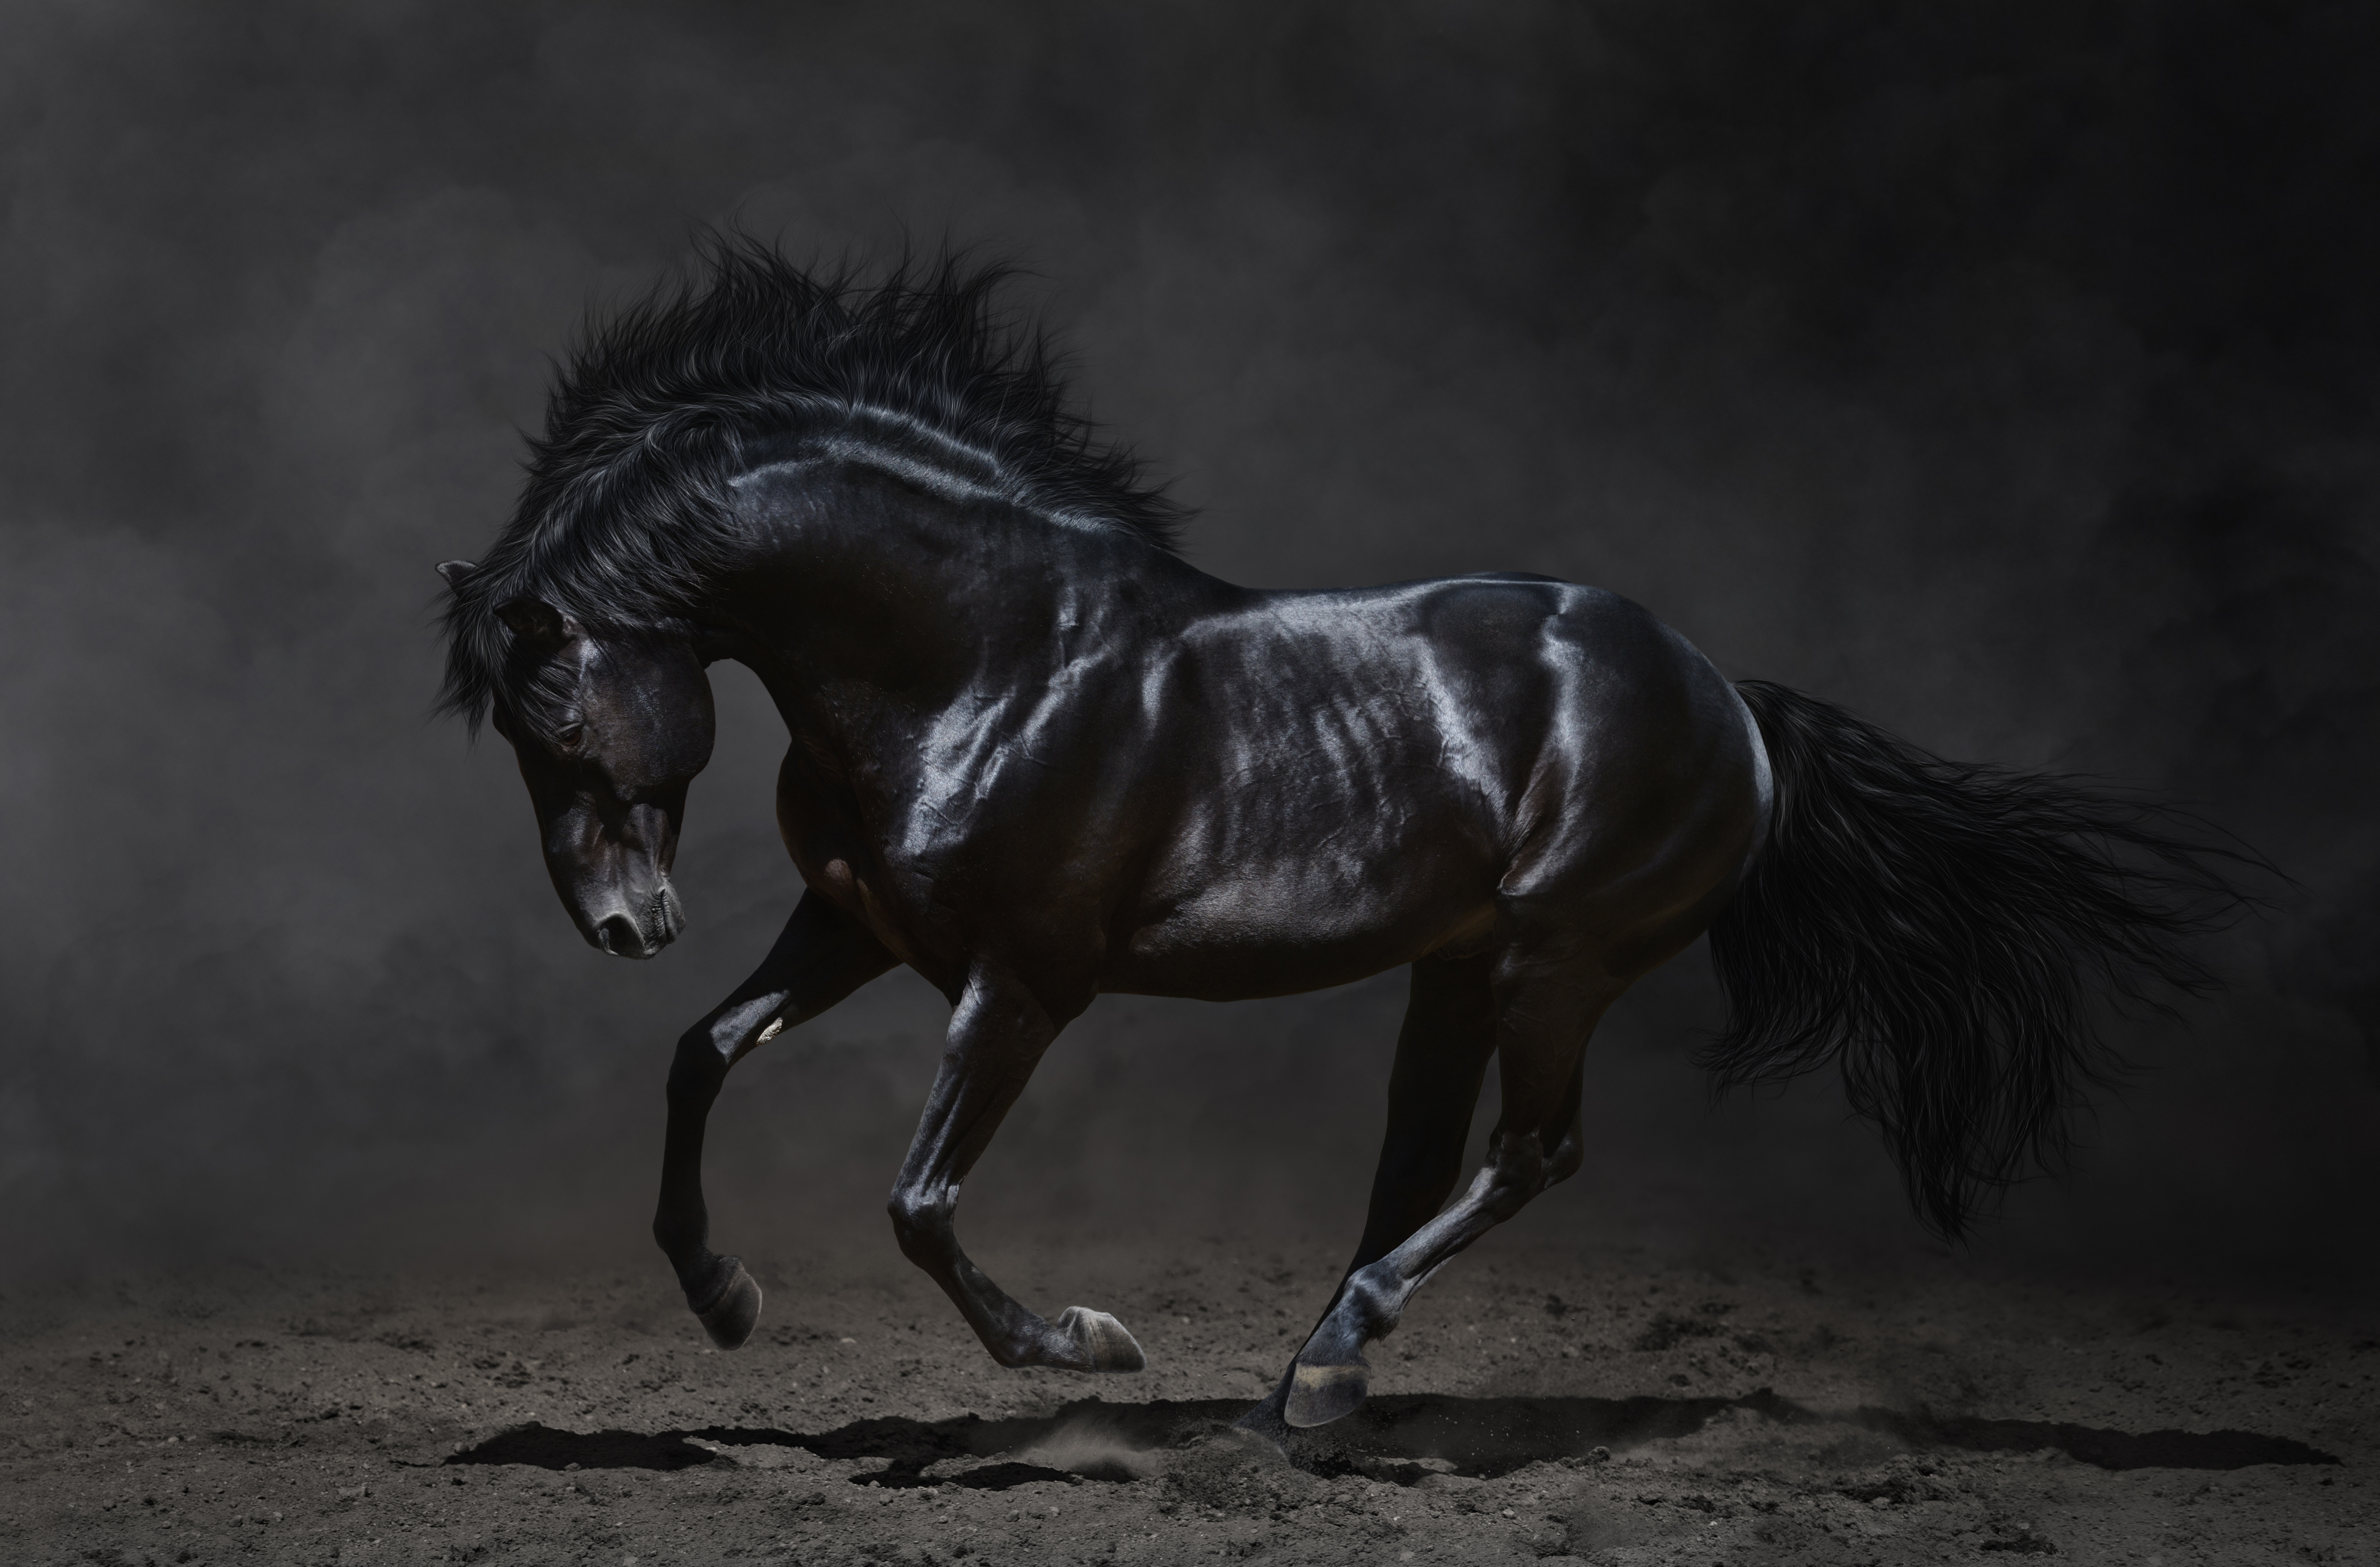 128 4k ultra hd horse wallpapers background images wallpaper abyss hd wallpaper background image id681642 5944x3914 animal horse thecheapjerseys Image collections